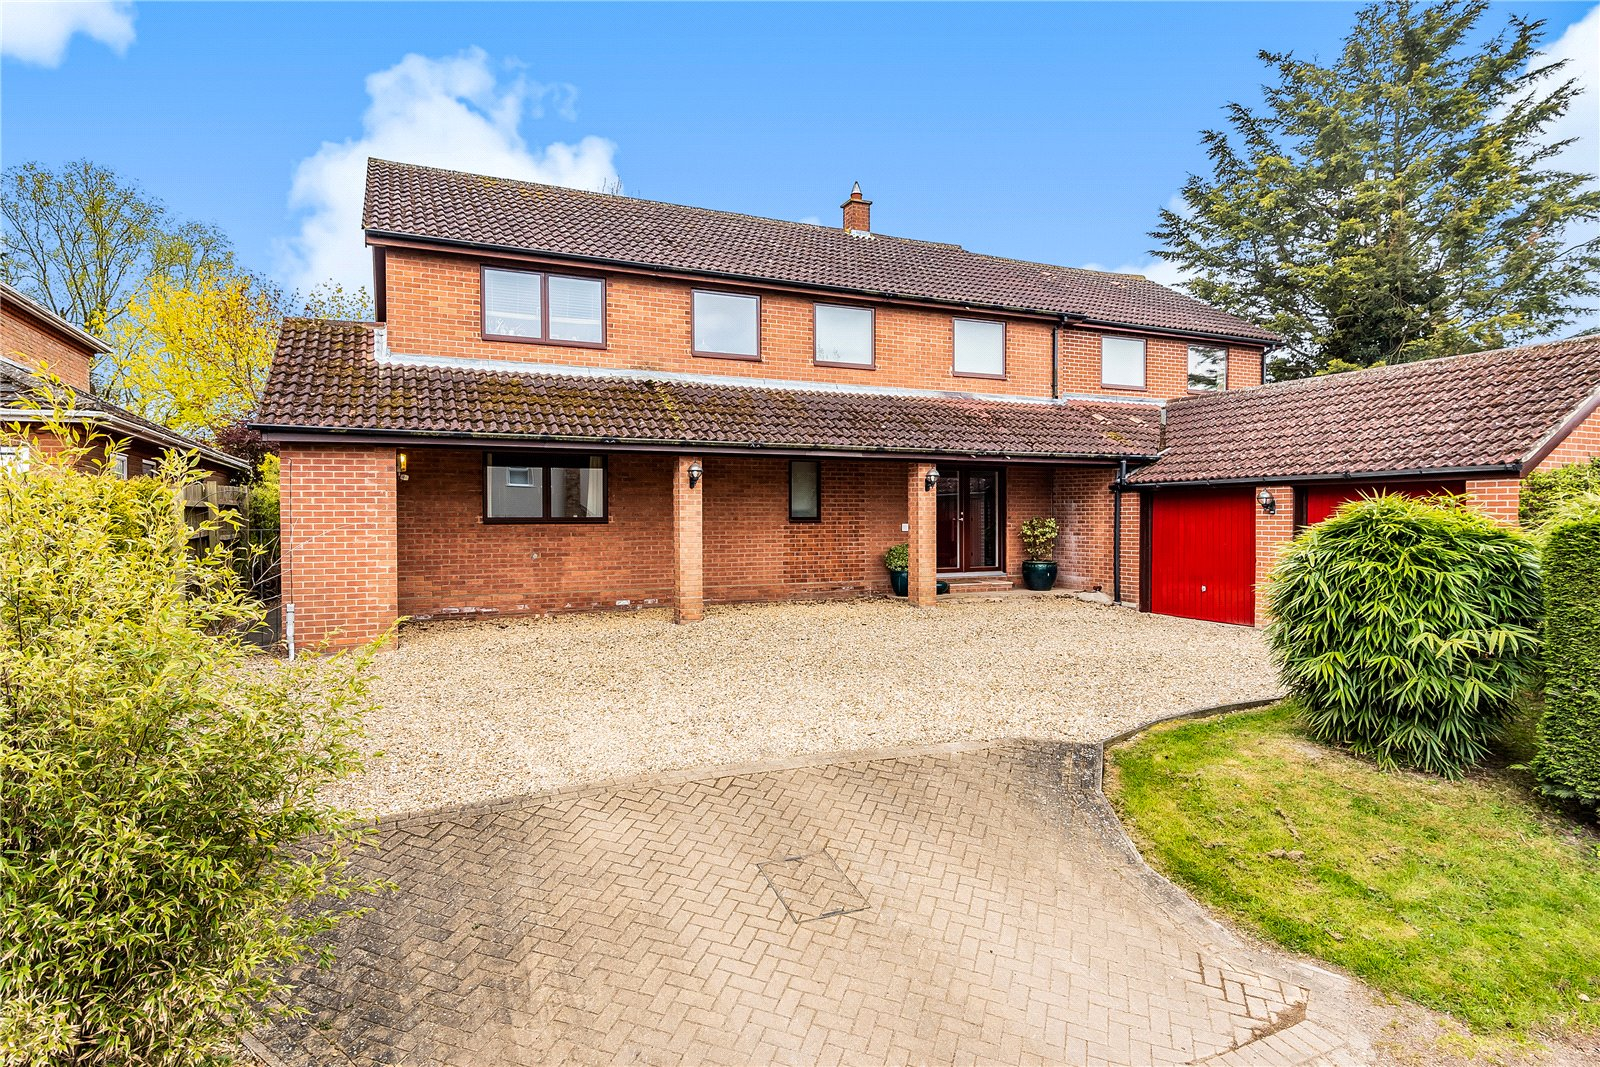 6 bed house for sale in High Street, Graveley - Property Image 1